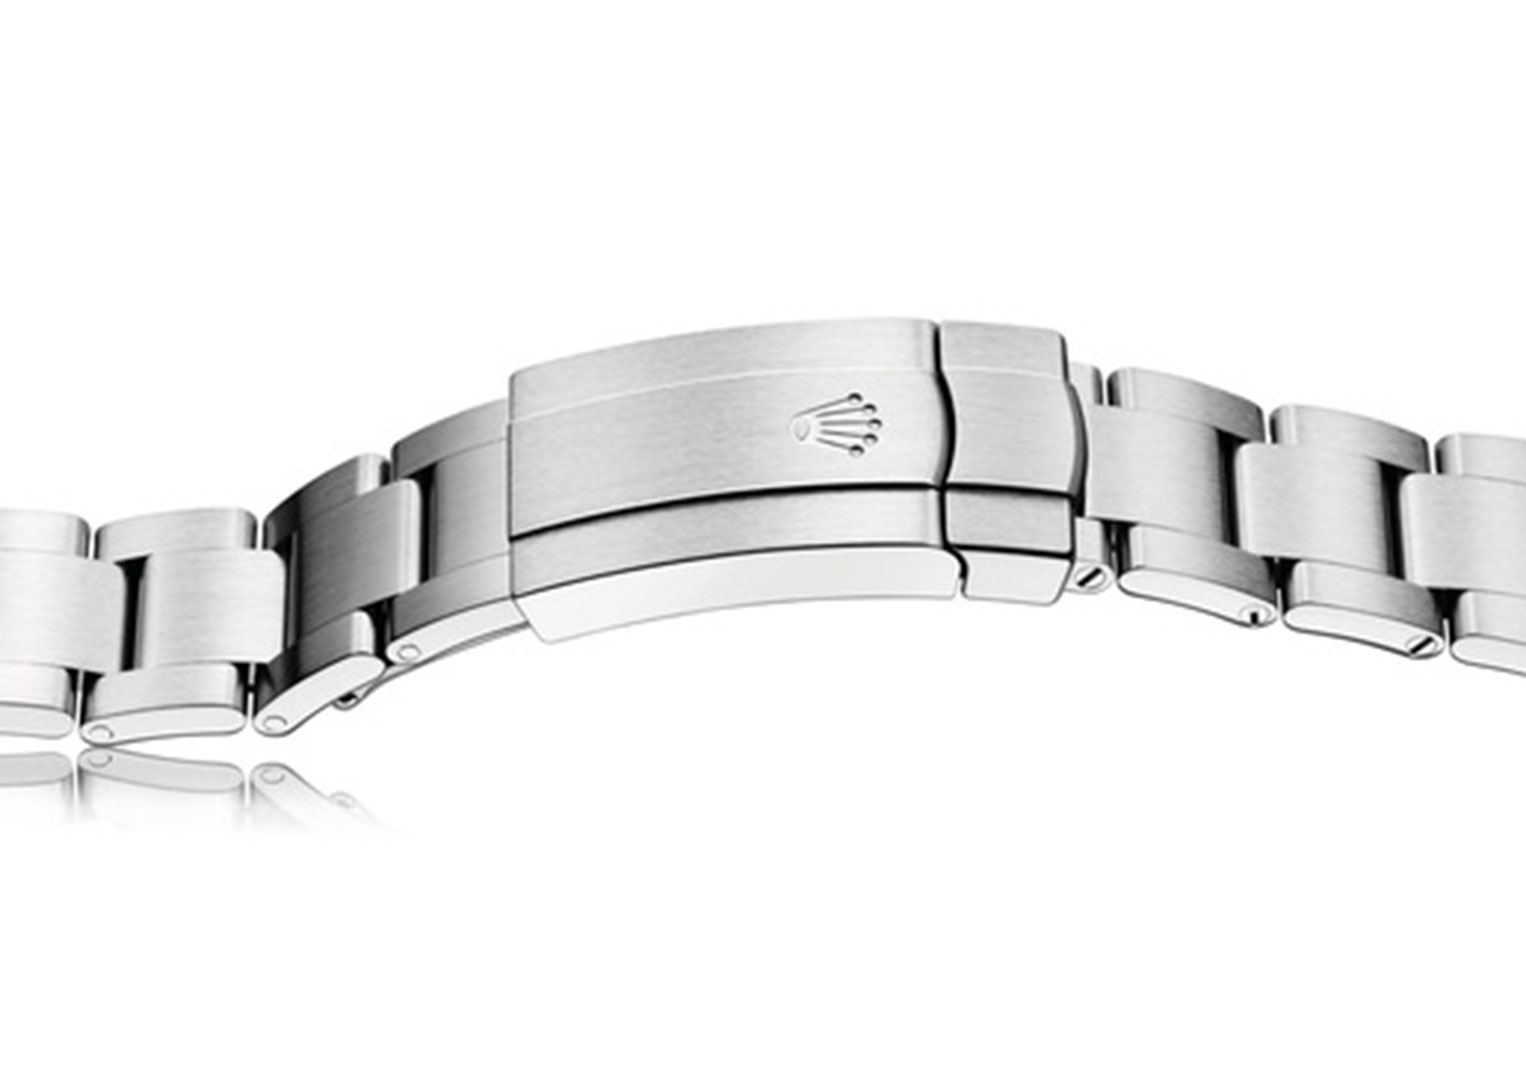 A modern version of Rolex's much-imitated Oyster bracelet